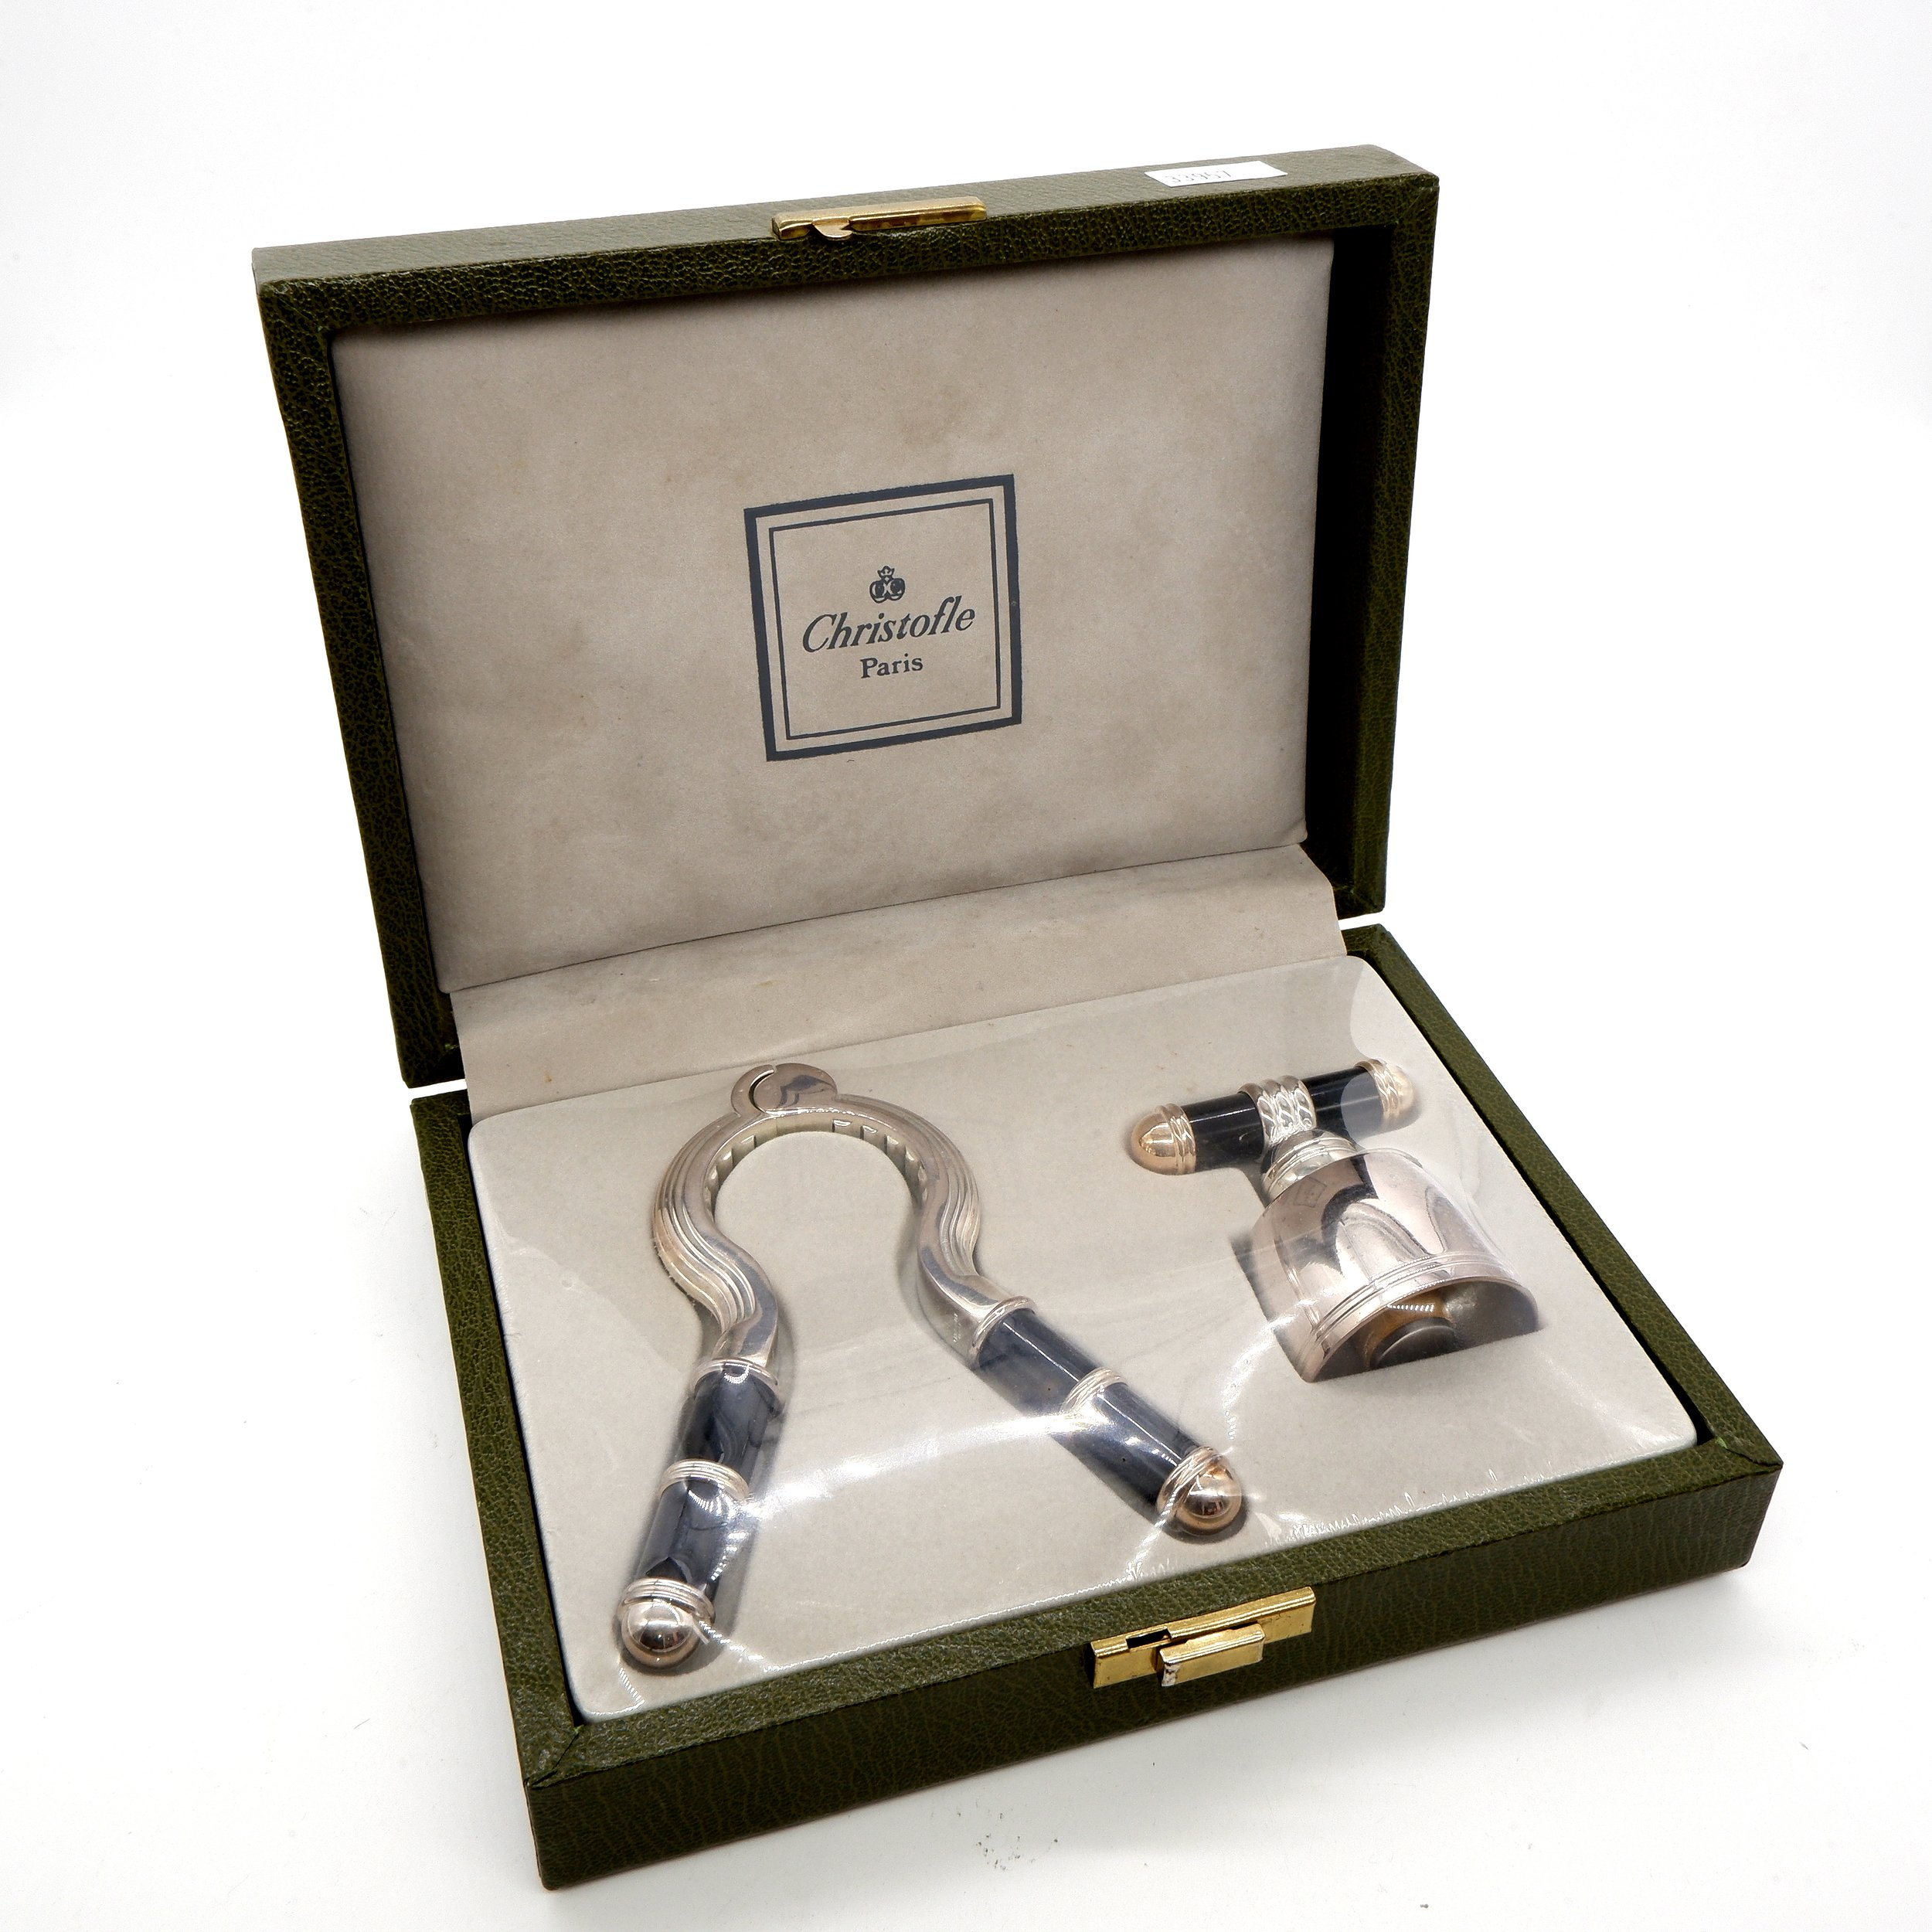 'Boxed Christofle Paris Silver Plated Champagne Set'